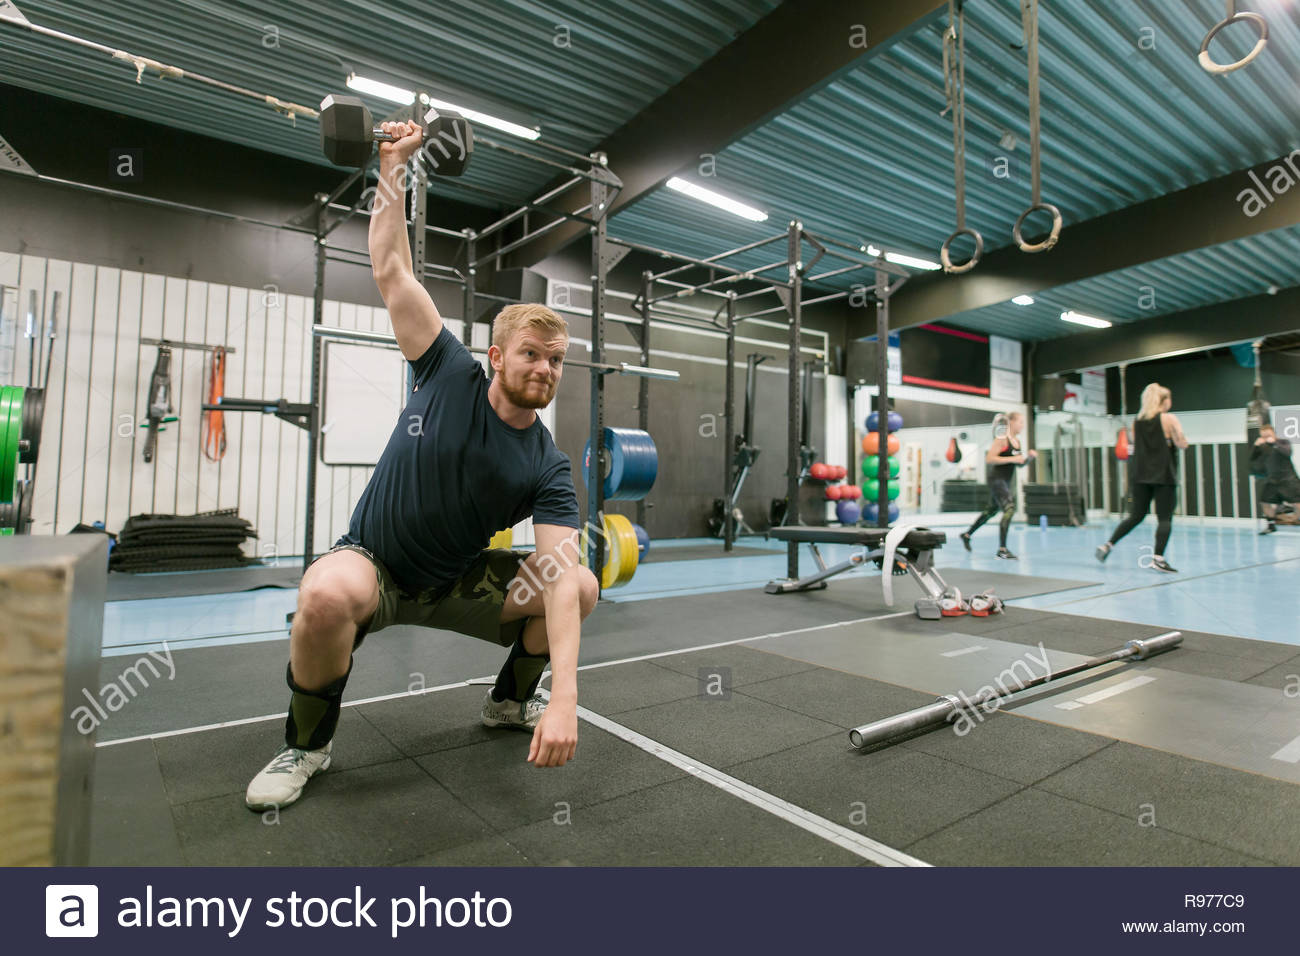 Young man lifting a dumbbell in a gym - Stock Image